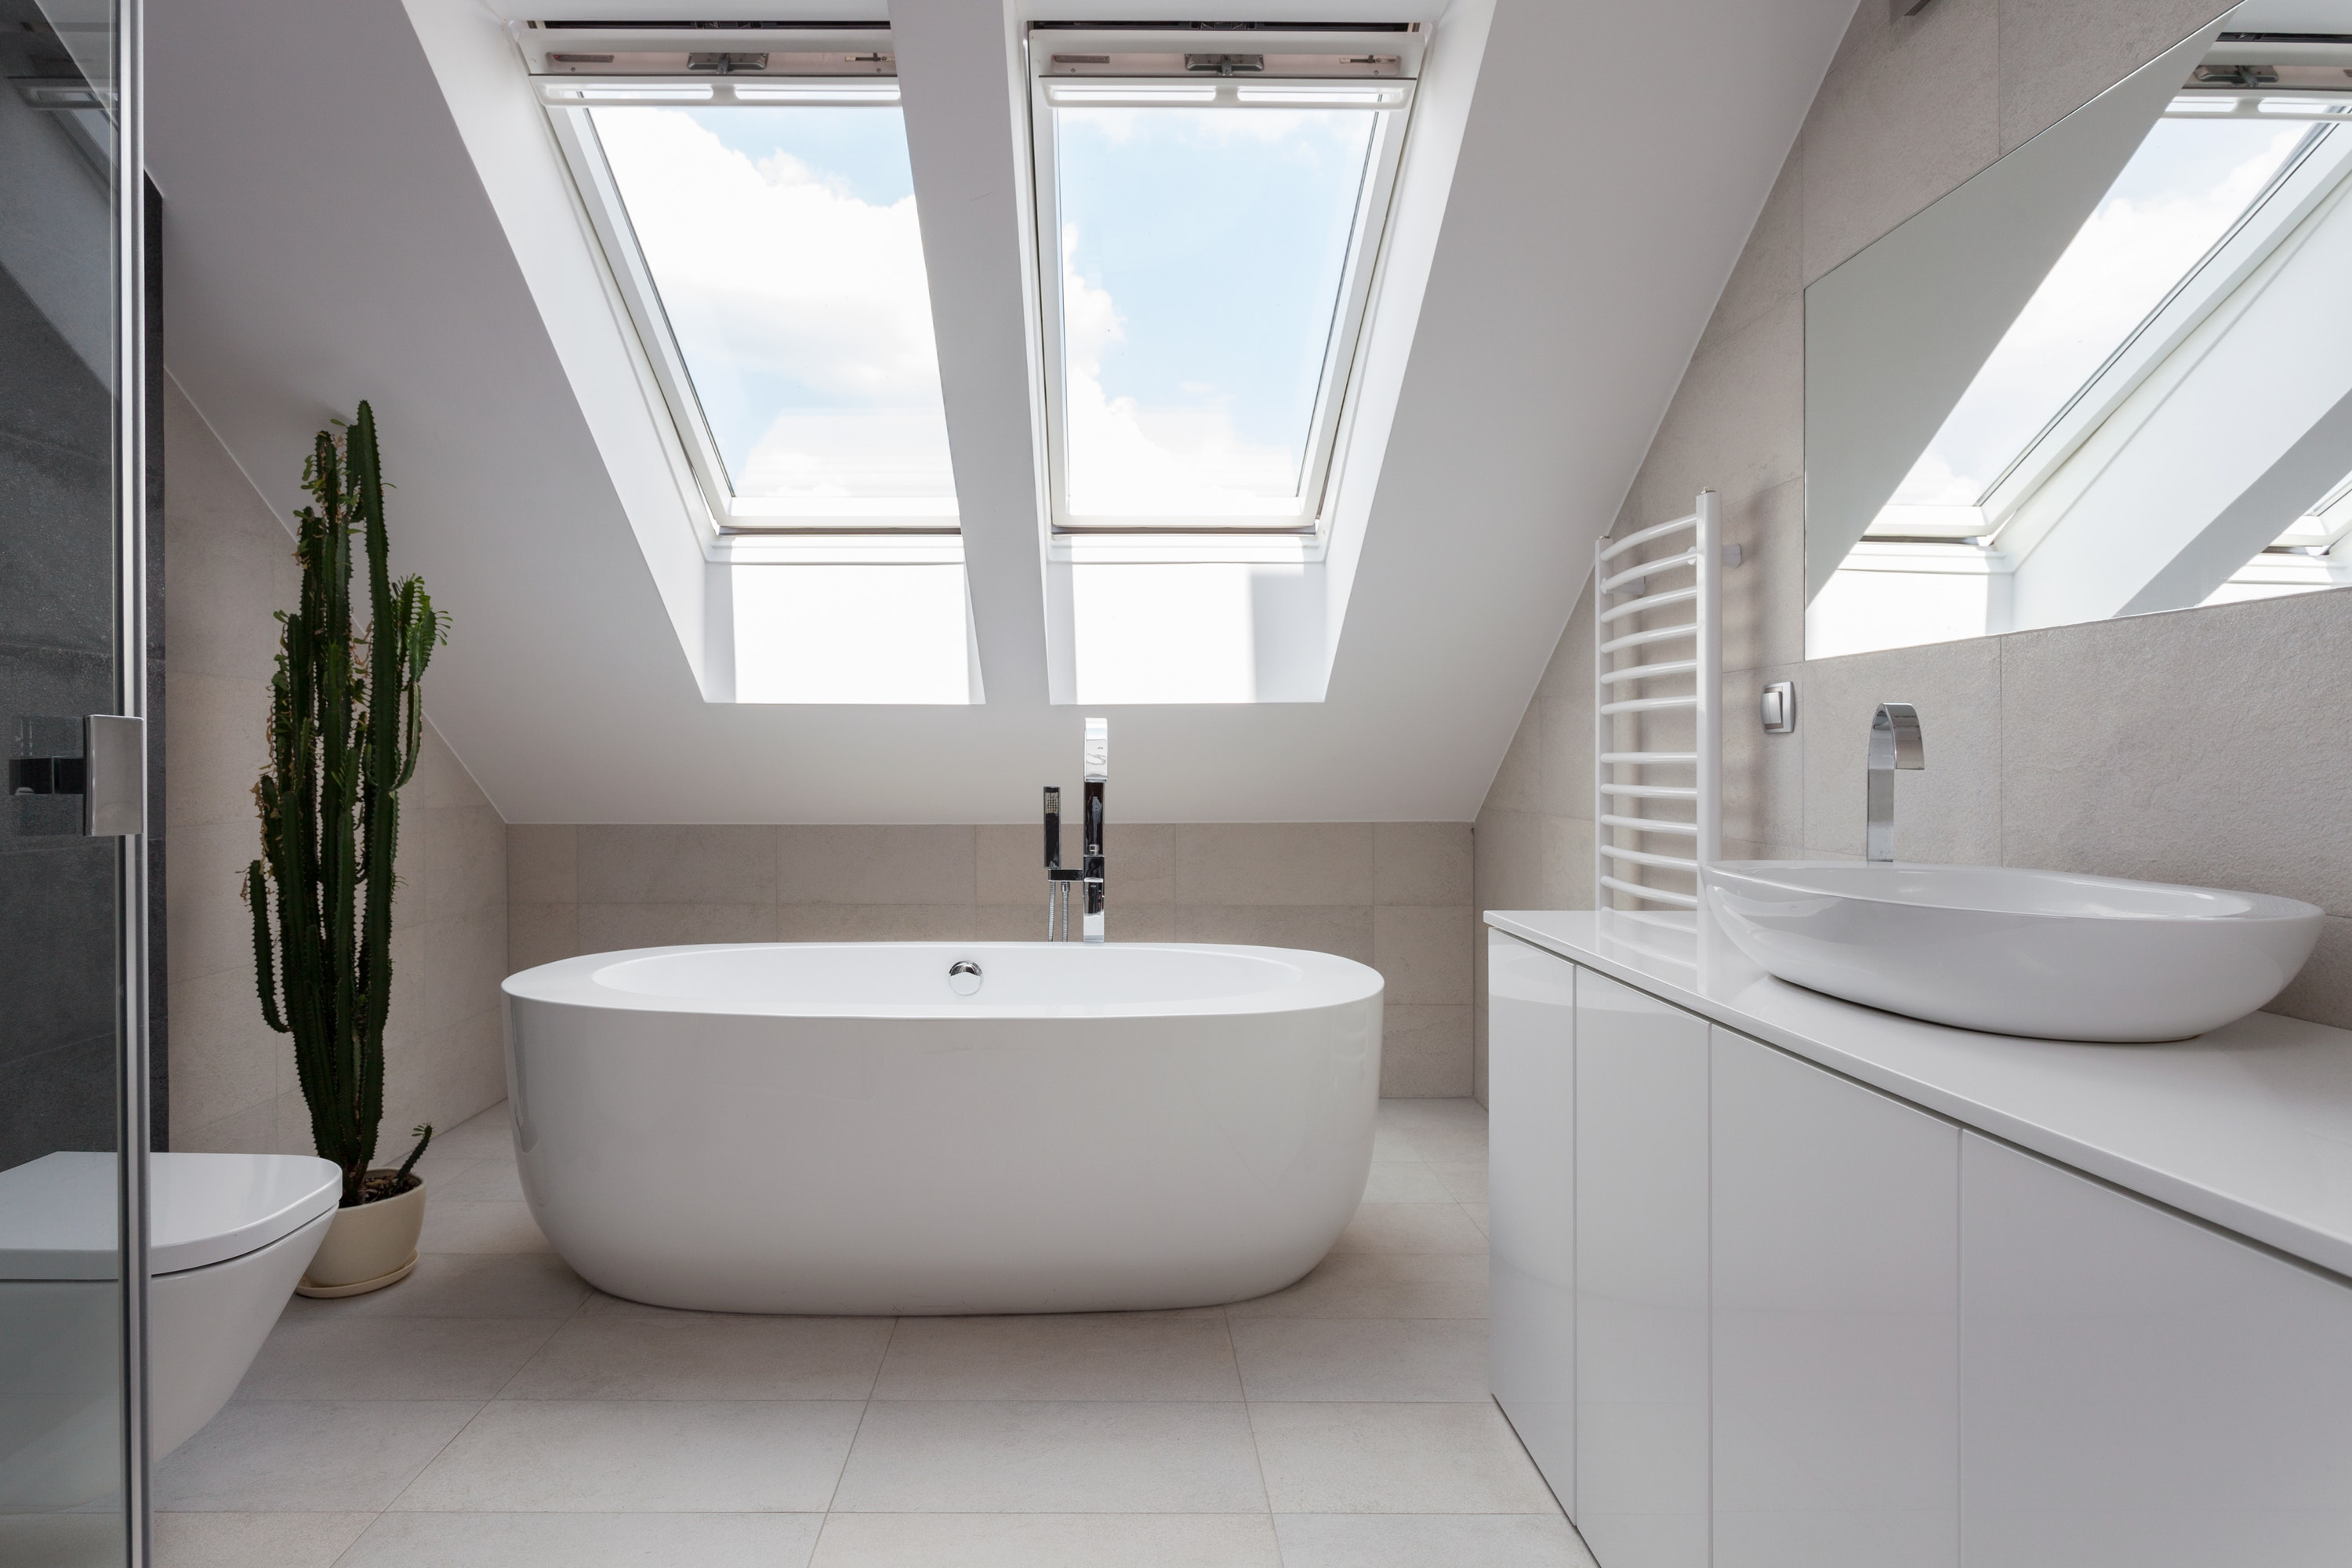 Could you add skylights?